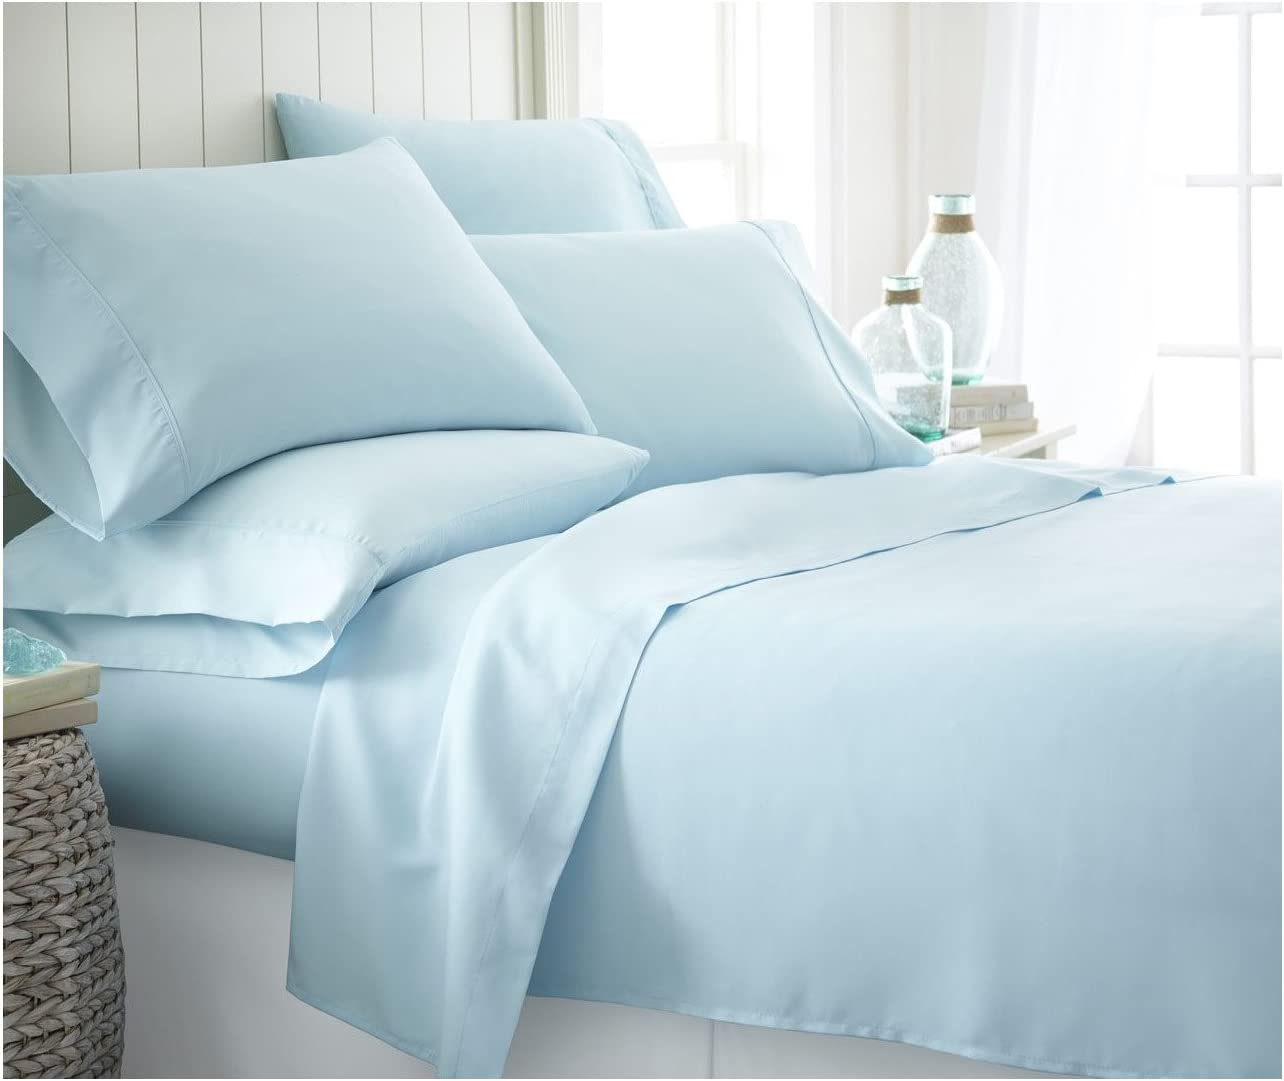 ienjoy Home 6 Piece Home Collection Premium Ultra Soft Bed Sheet Set, California King, Aqua, Calking